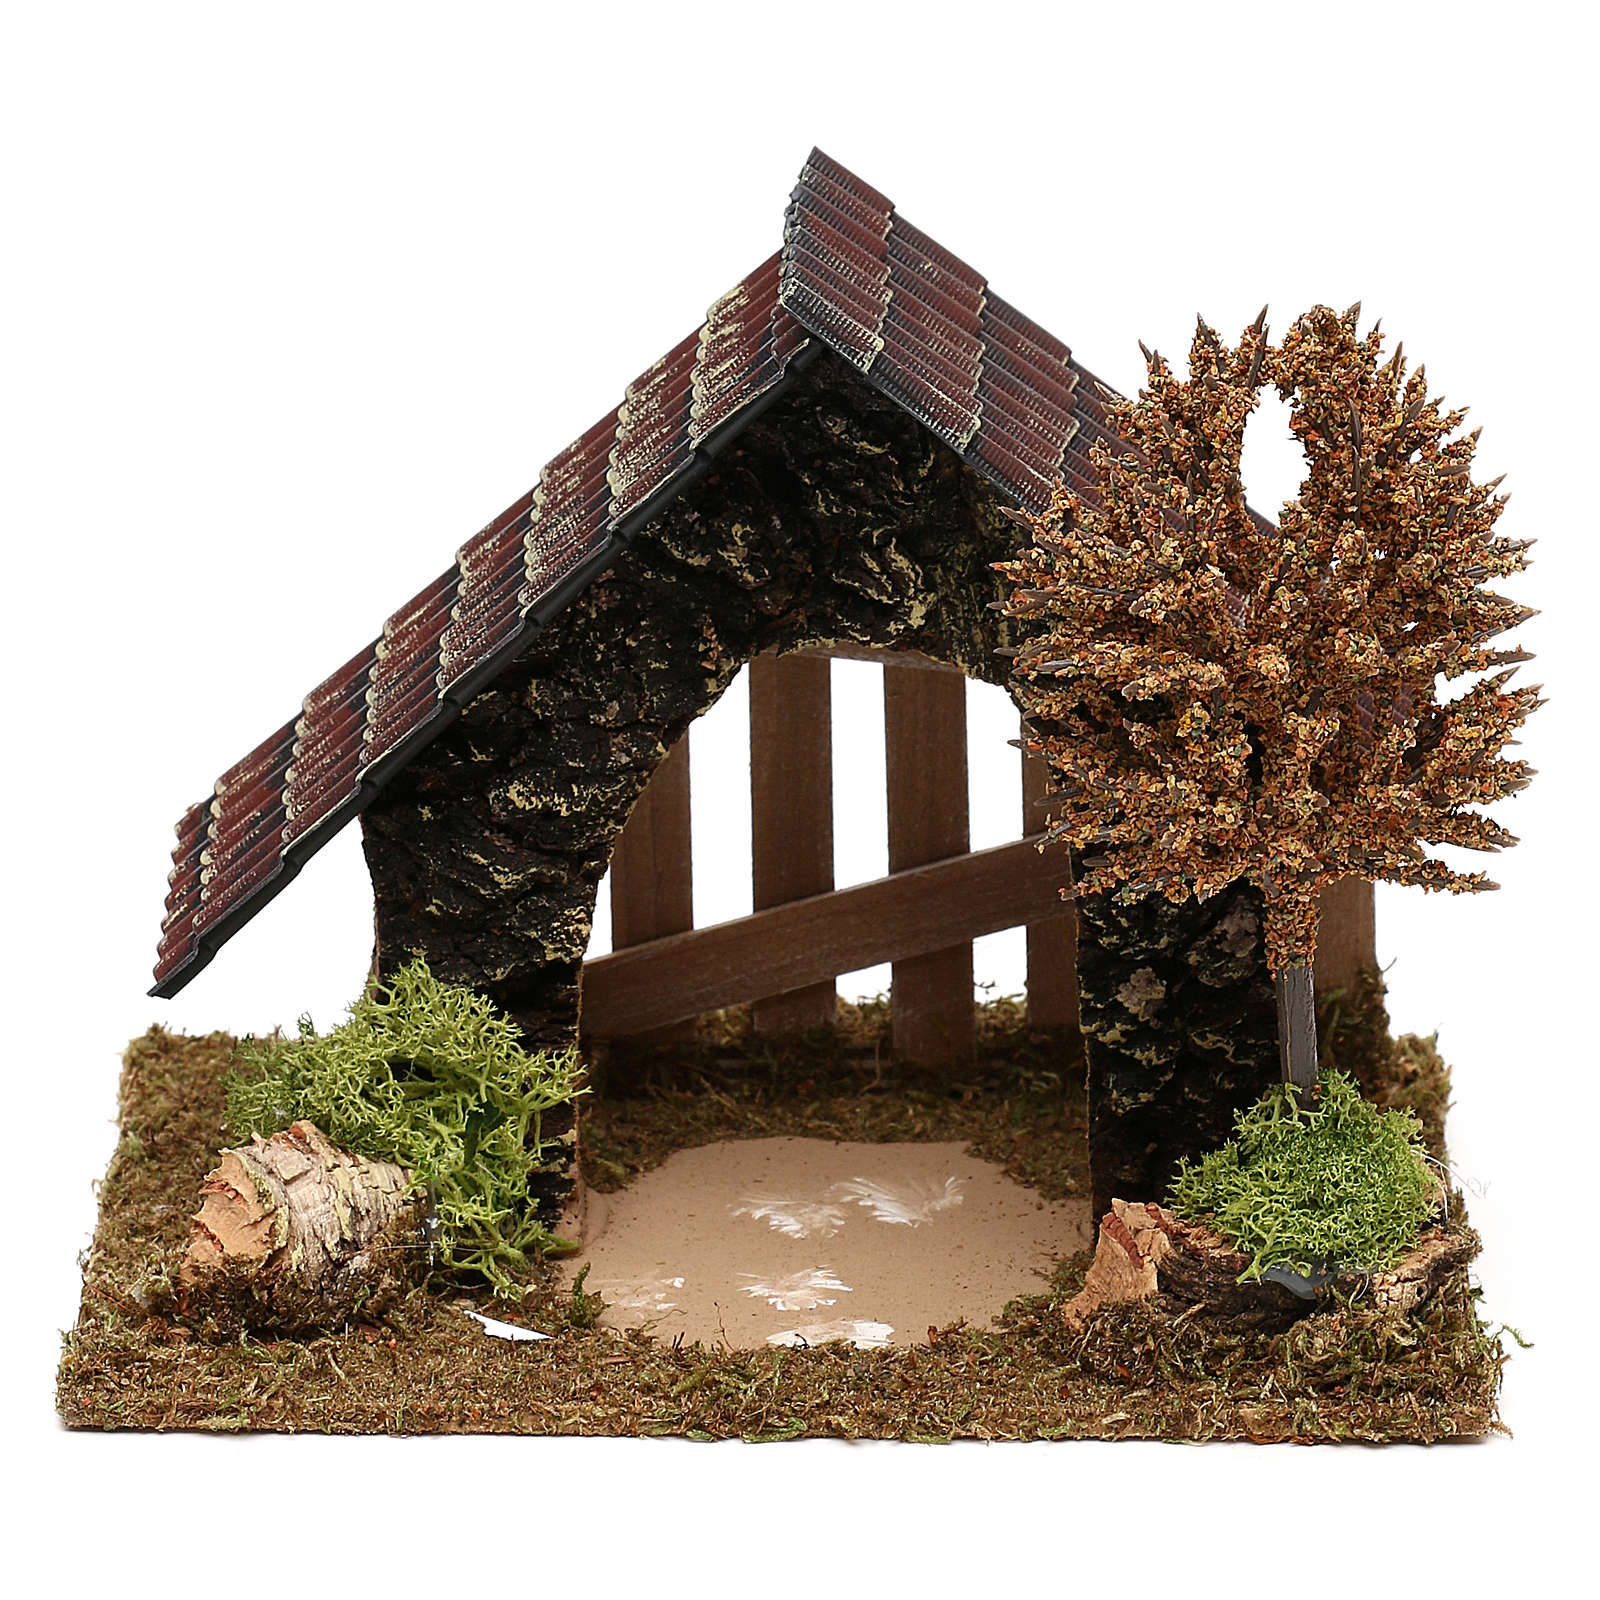 Cork hut with fence and tree Nativity scene 6 cm 4